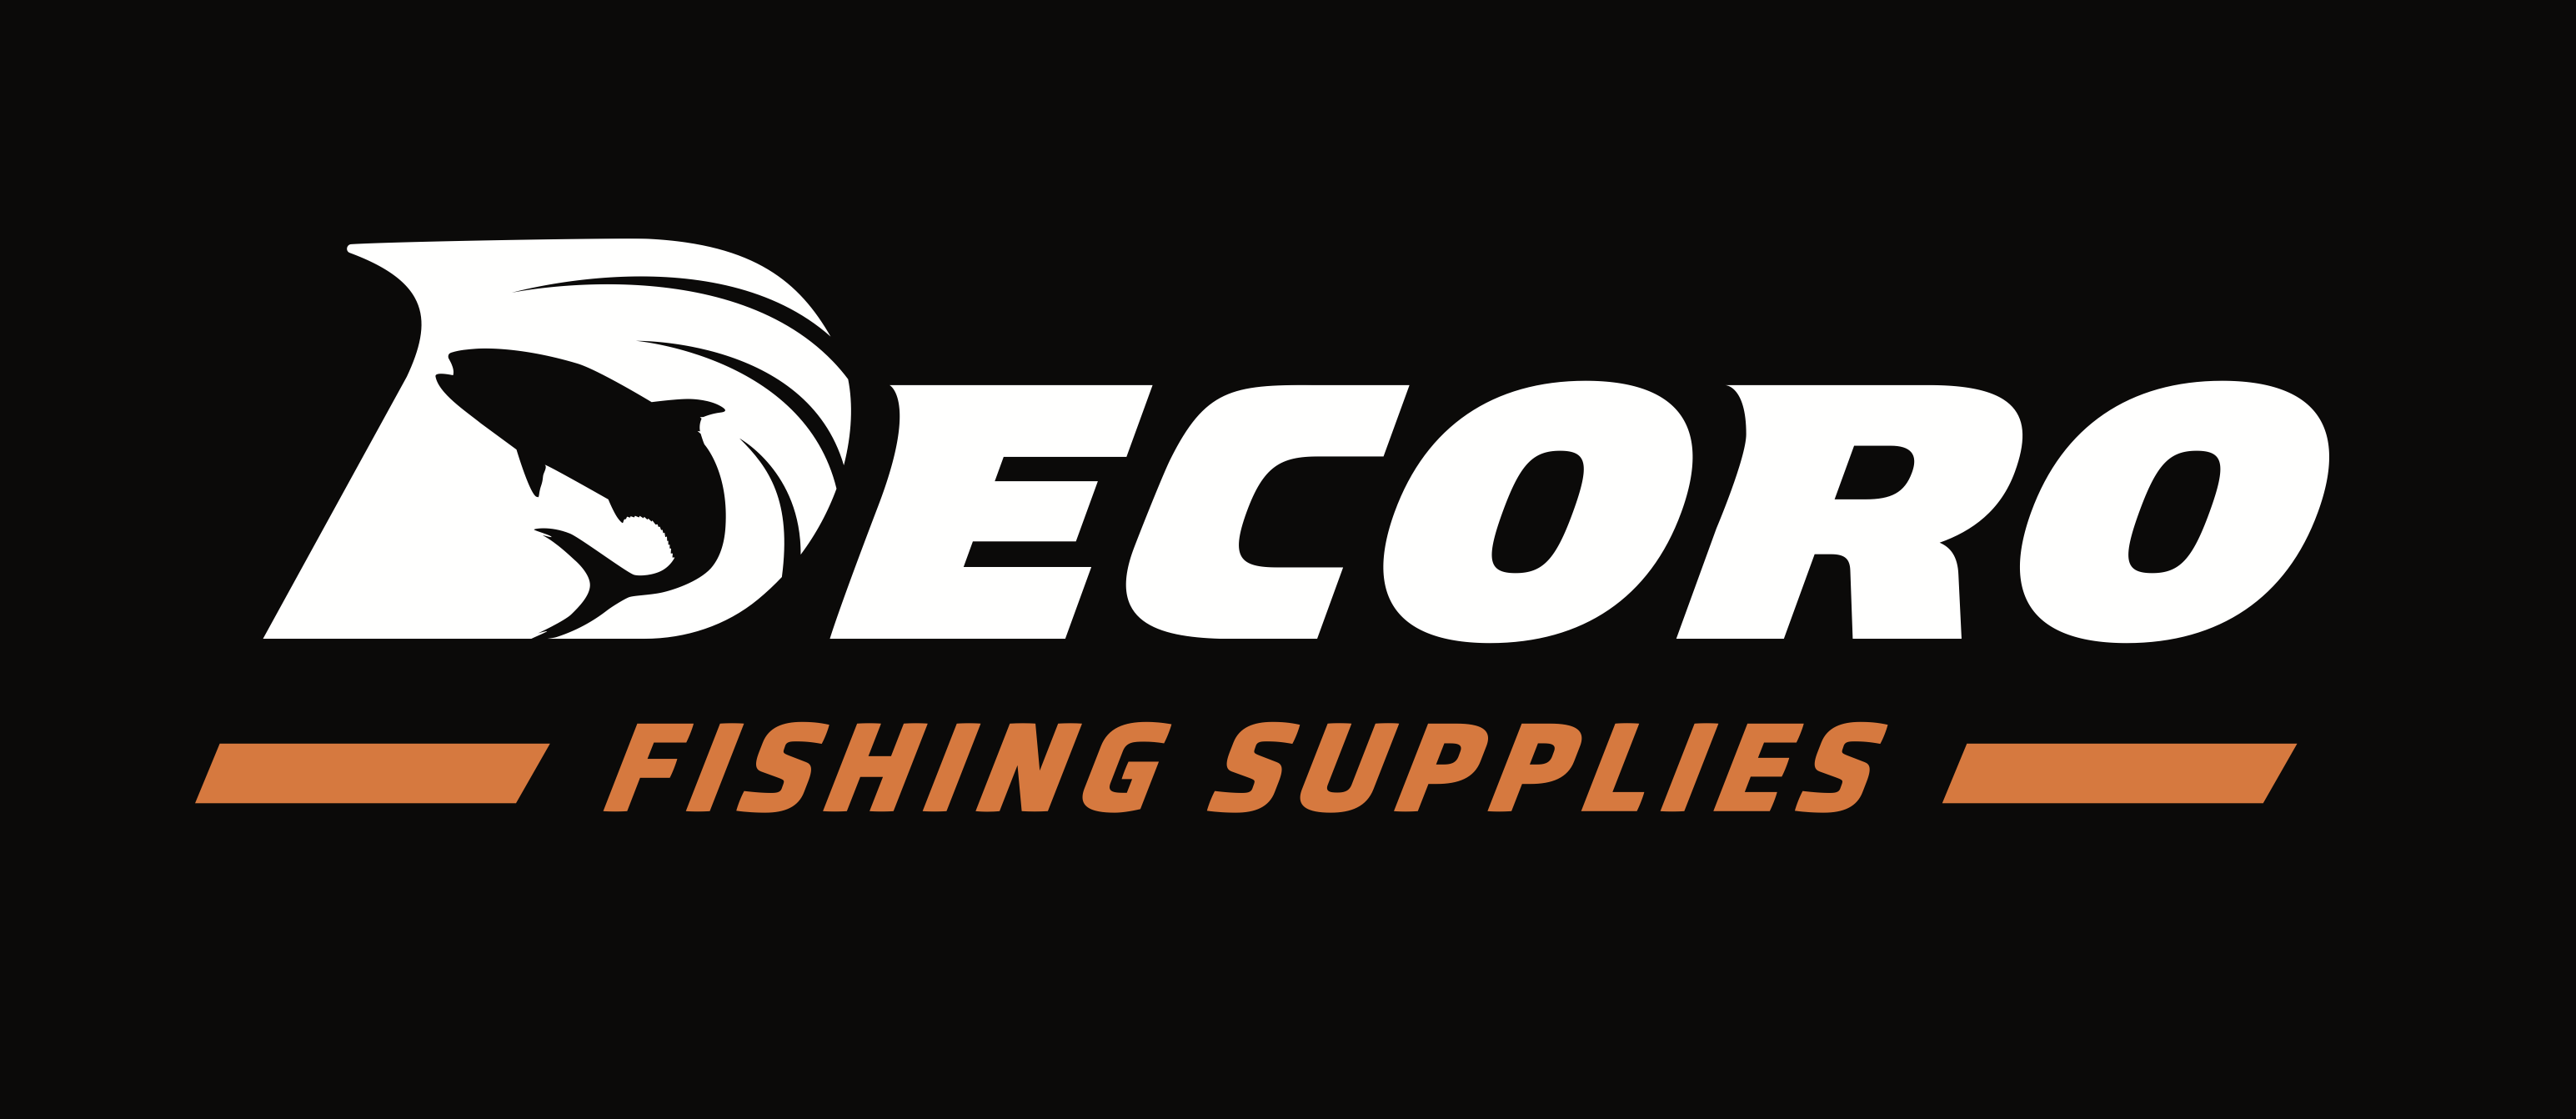 Decoro Fishing Supplies